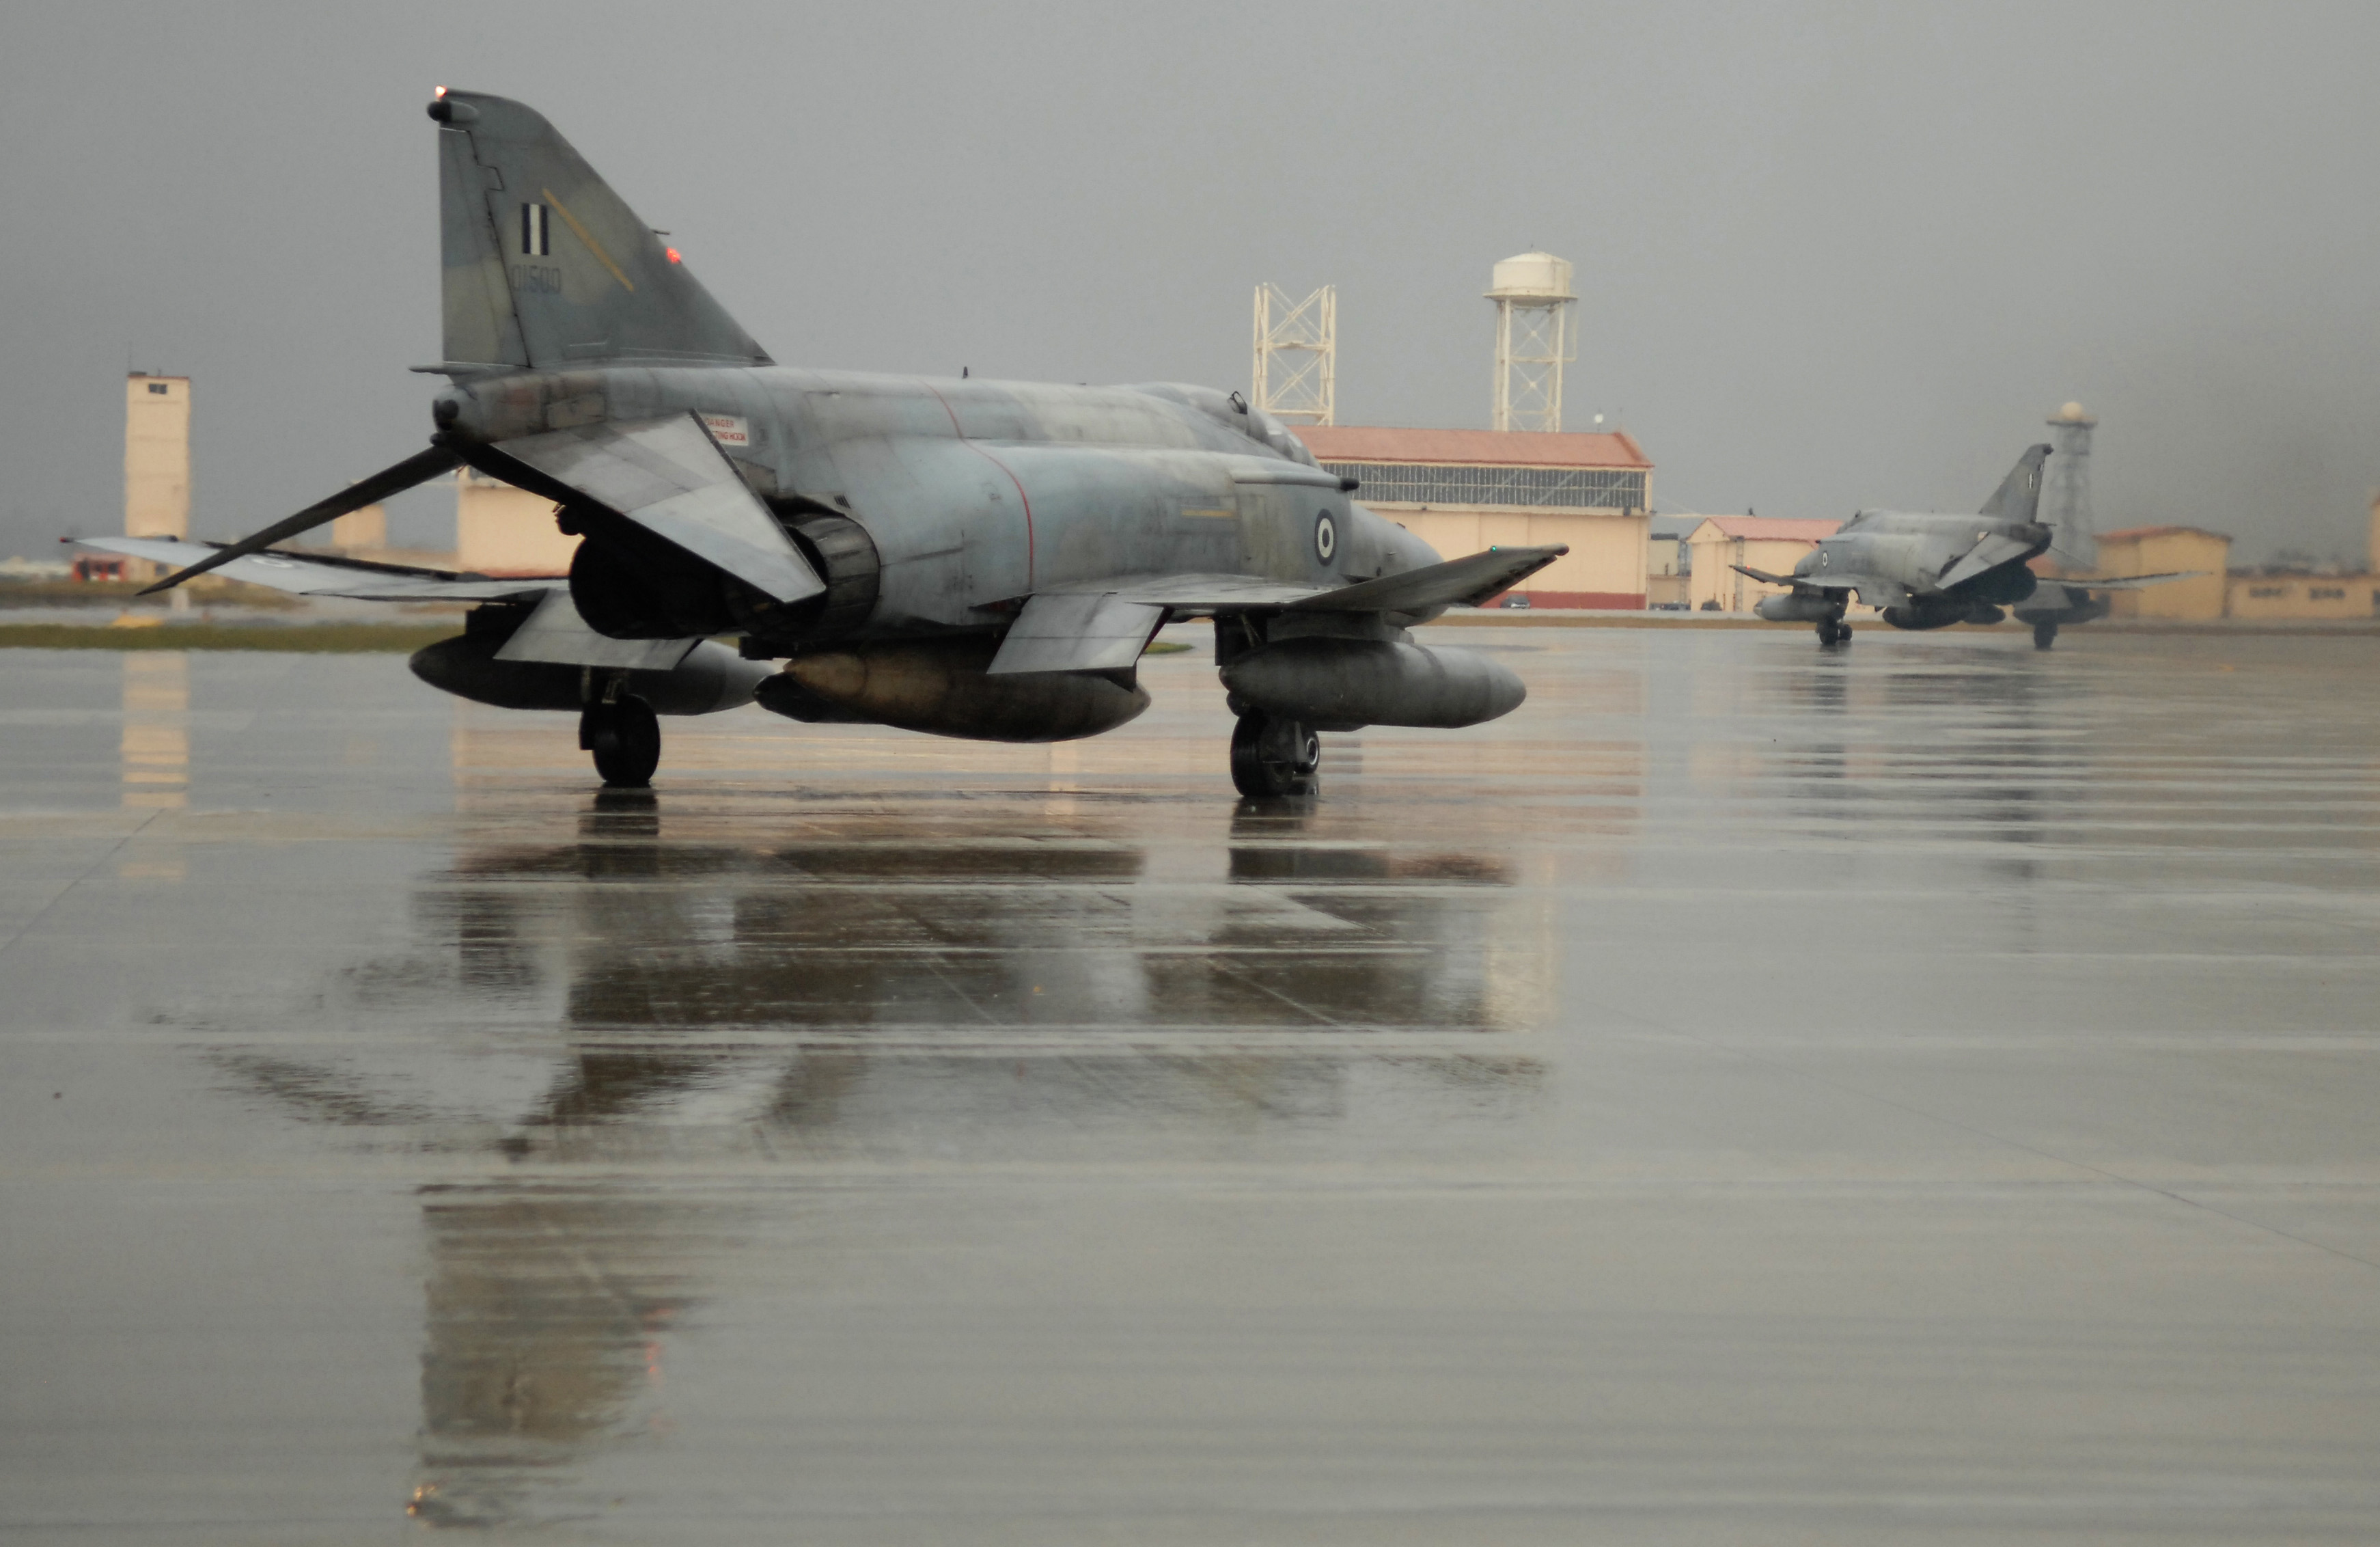 Greek F-4 Phantom, Aviano Air Base